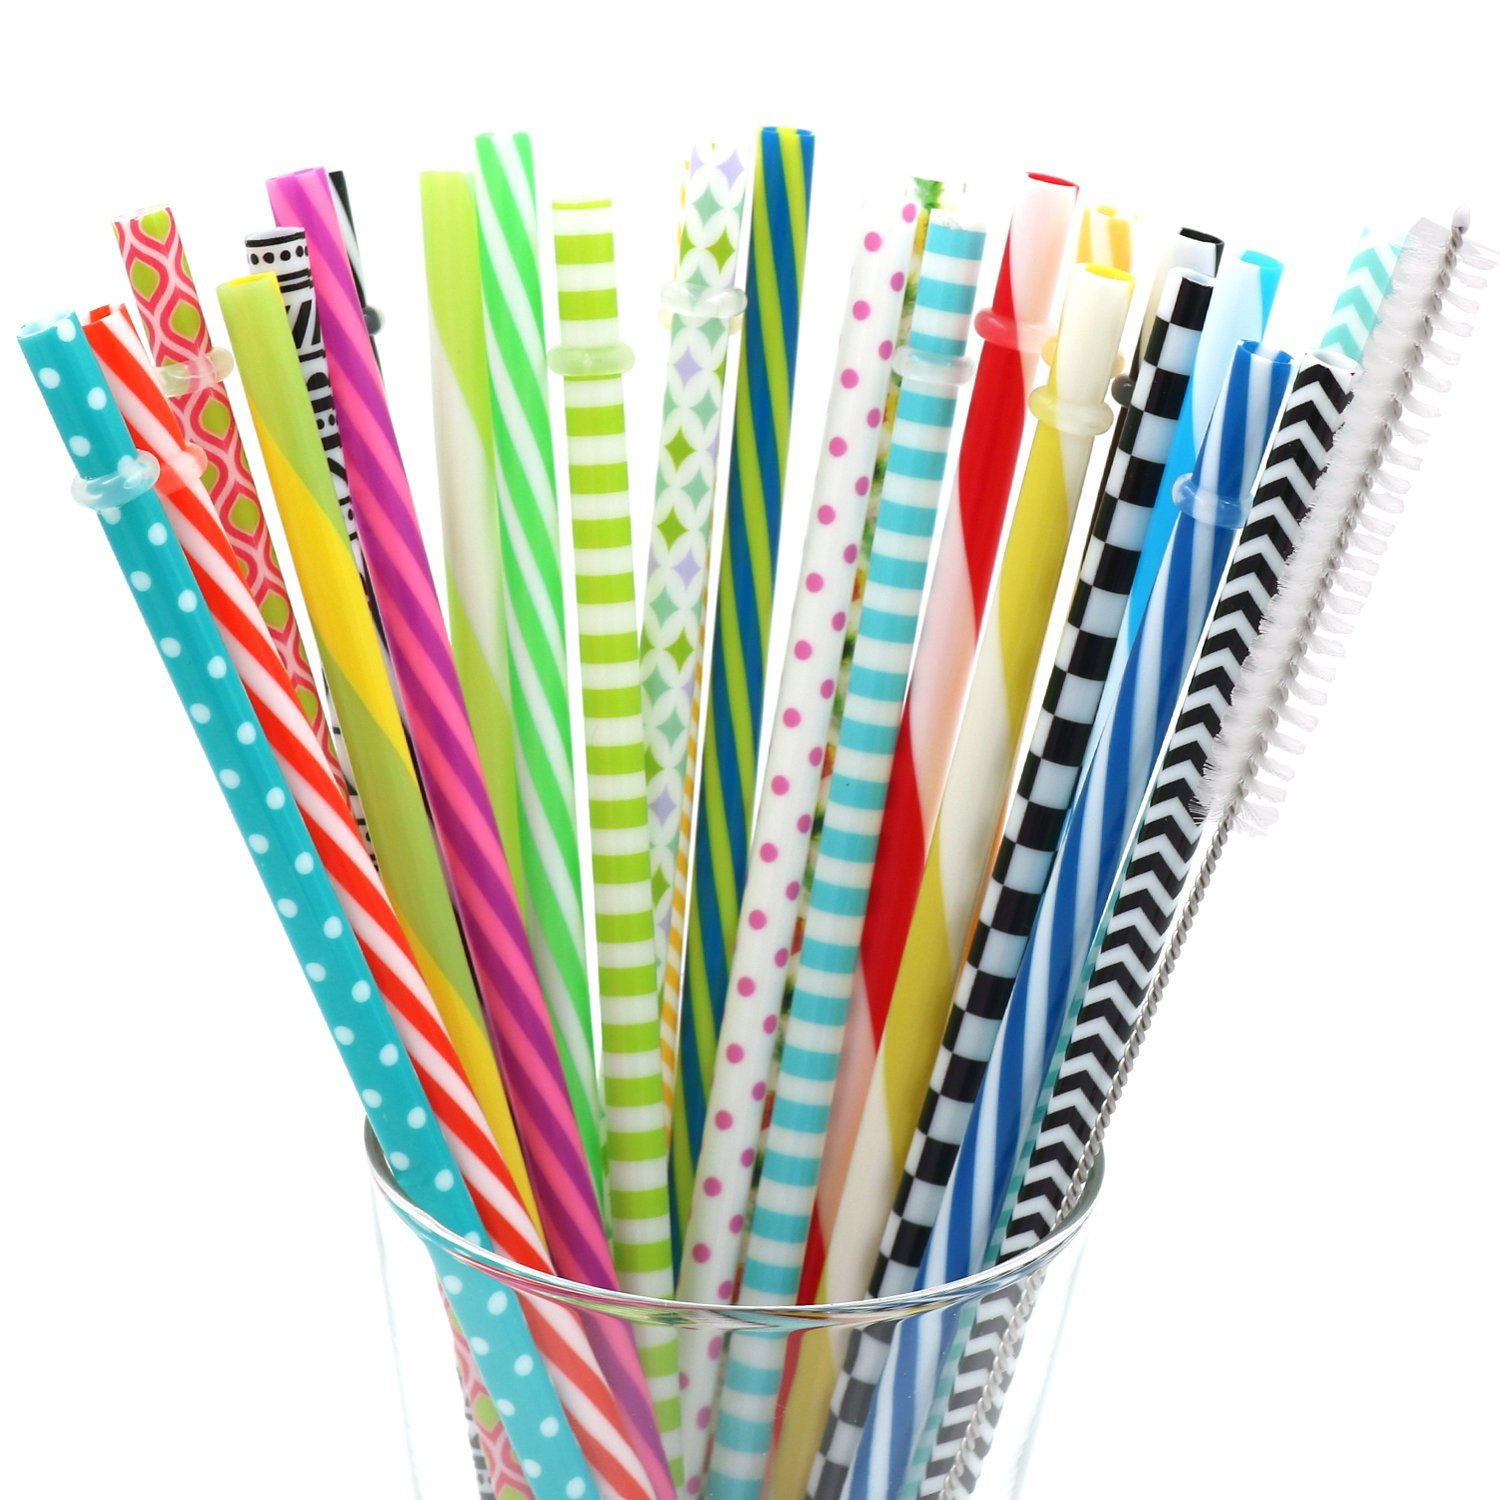 BESU 25 Pieces Reusable Straws Fit for Tumbler Mason Jar with Cleaning Brush(9 Inch and 10.5 Inch)